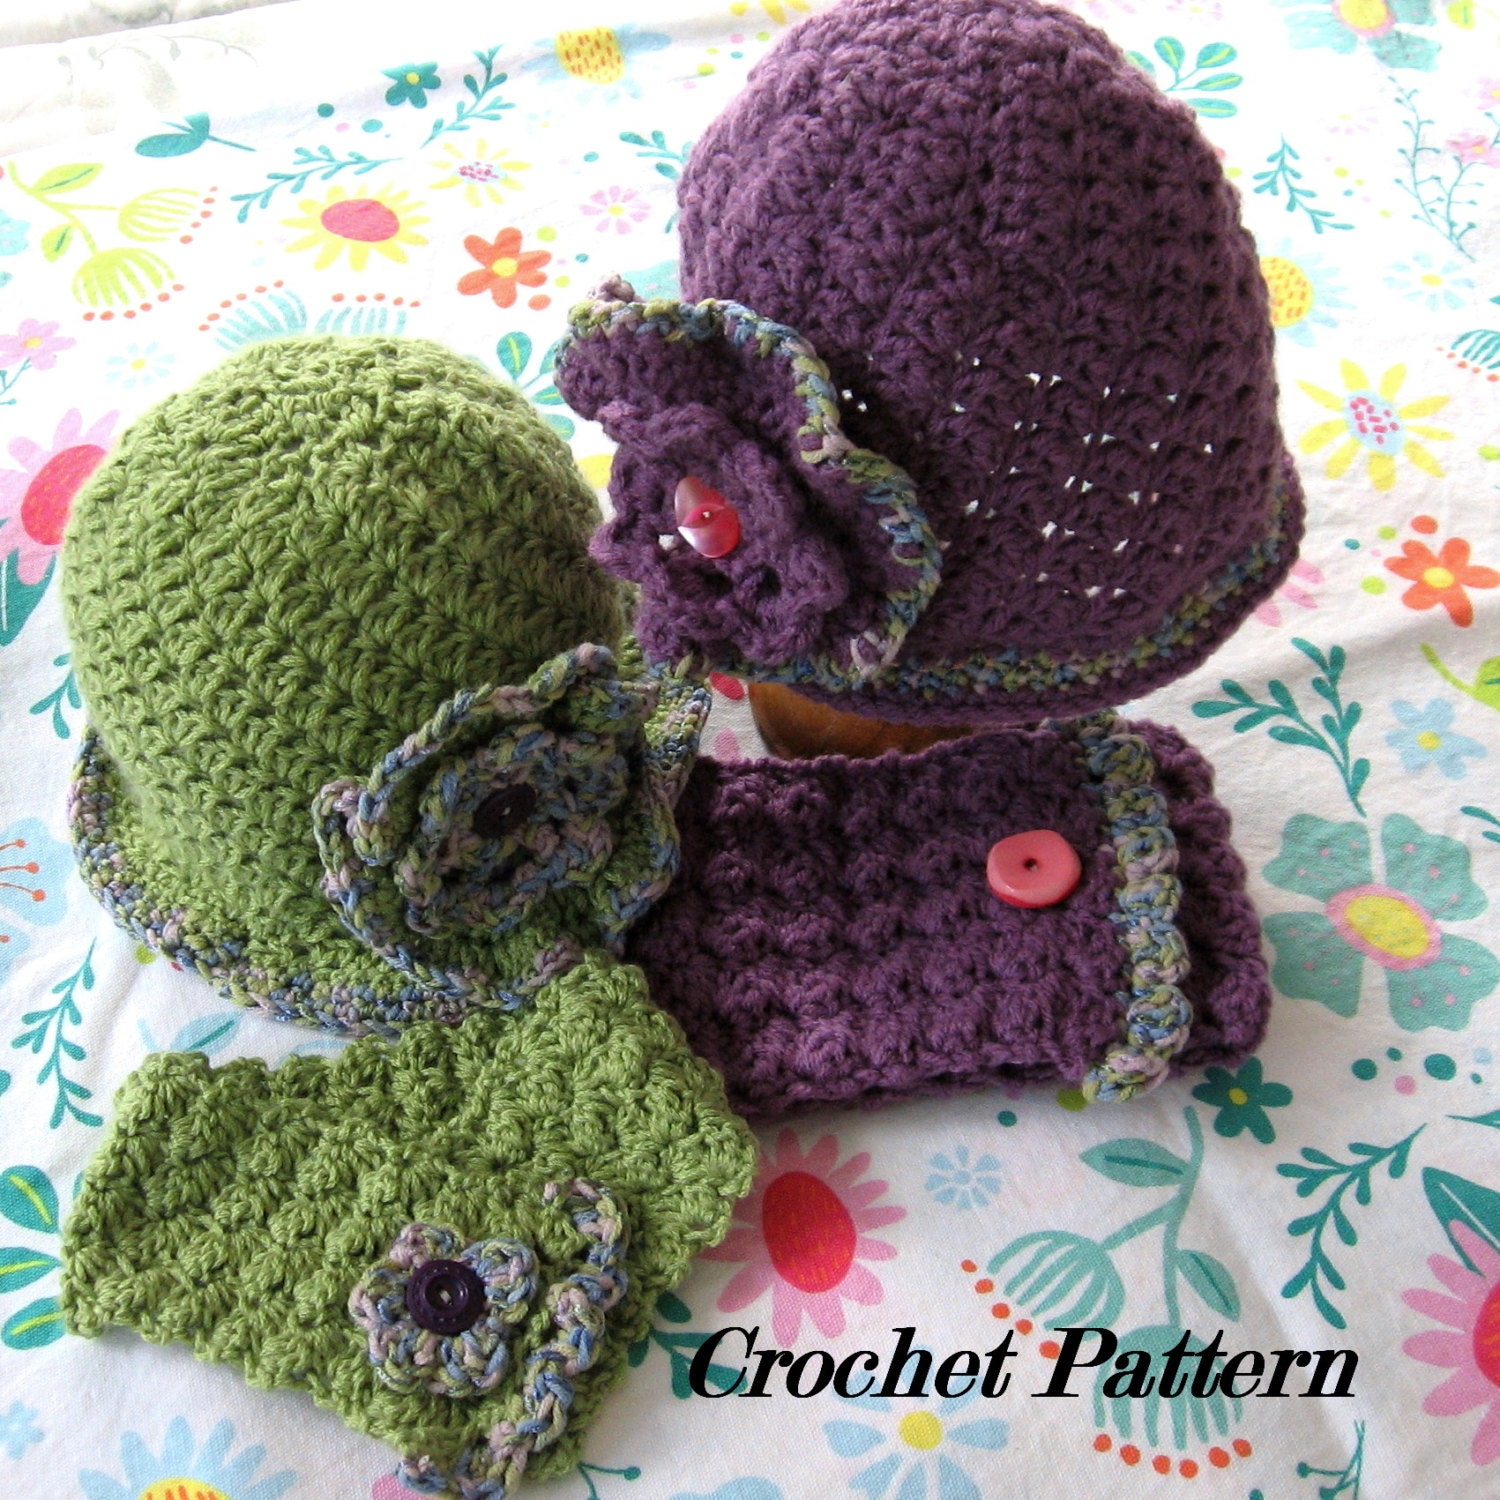 Crochet Pattern Neck Warmer : Crochet Pattern Hat And Neck Warmer With Large by ...